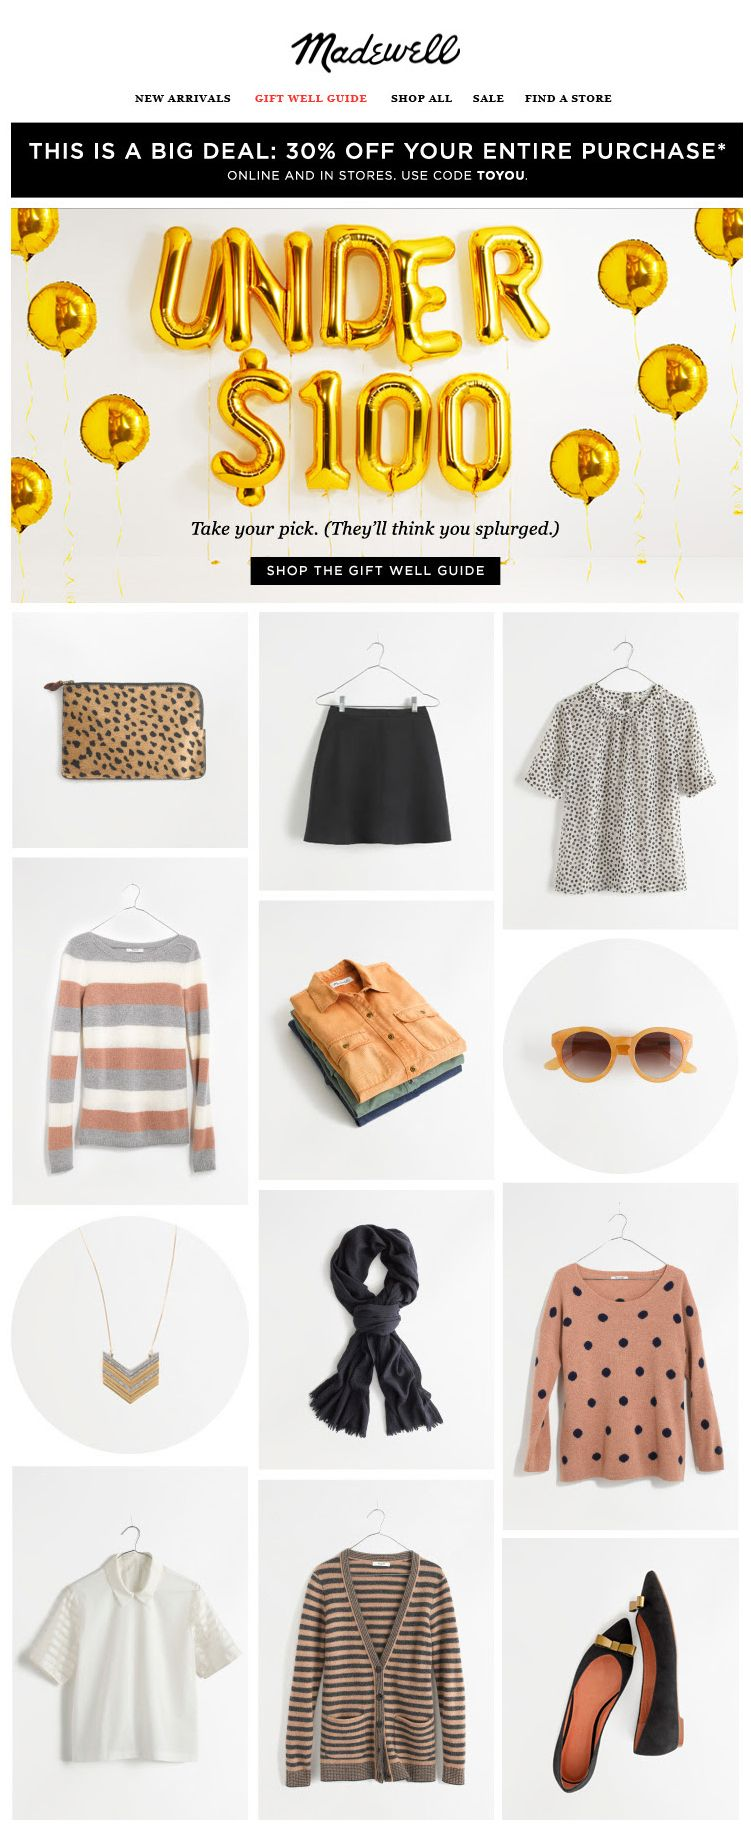 Madewell Gifts By Price Email Design Email Newsletter Design